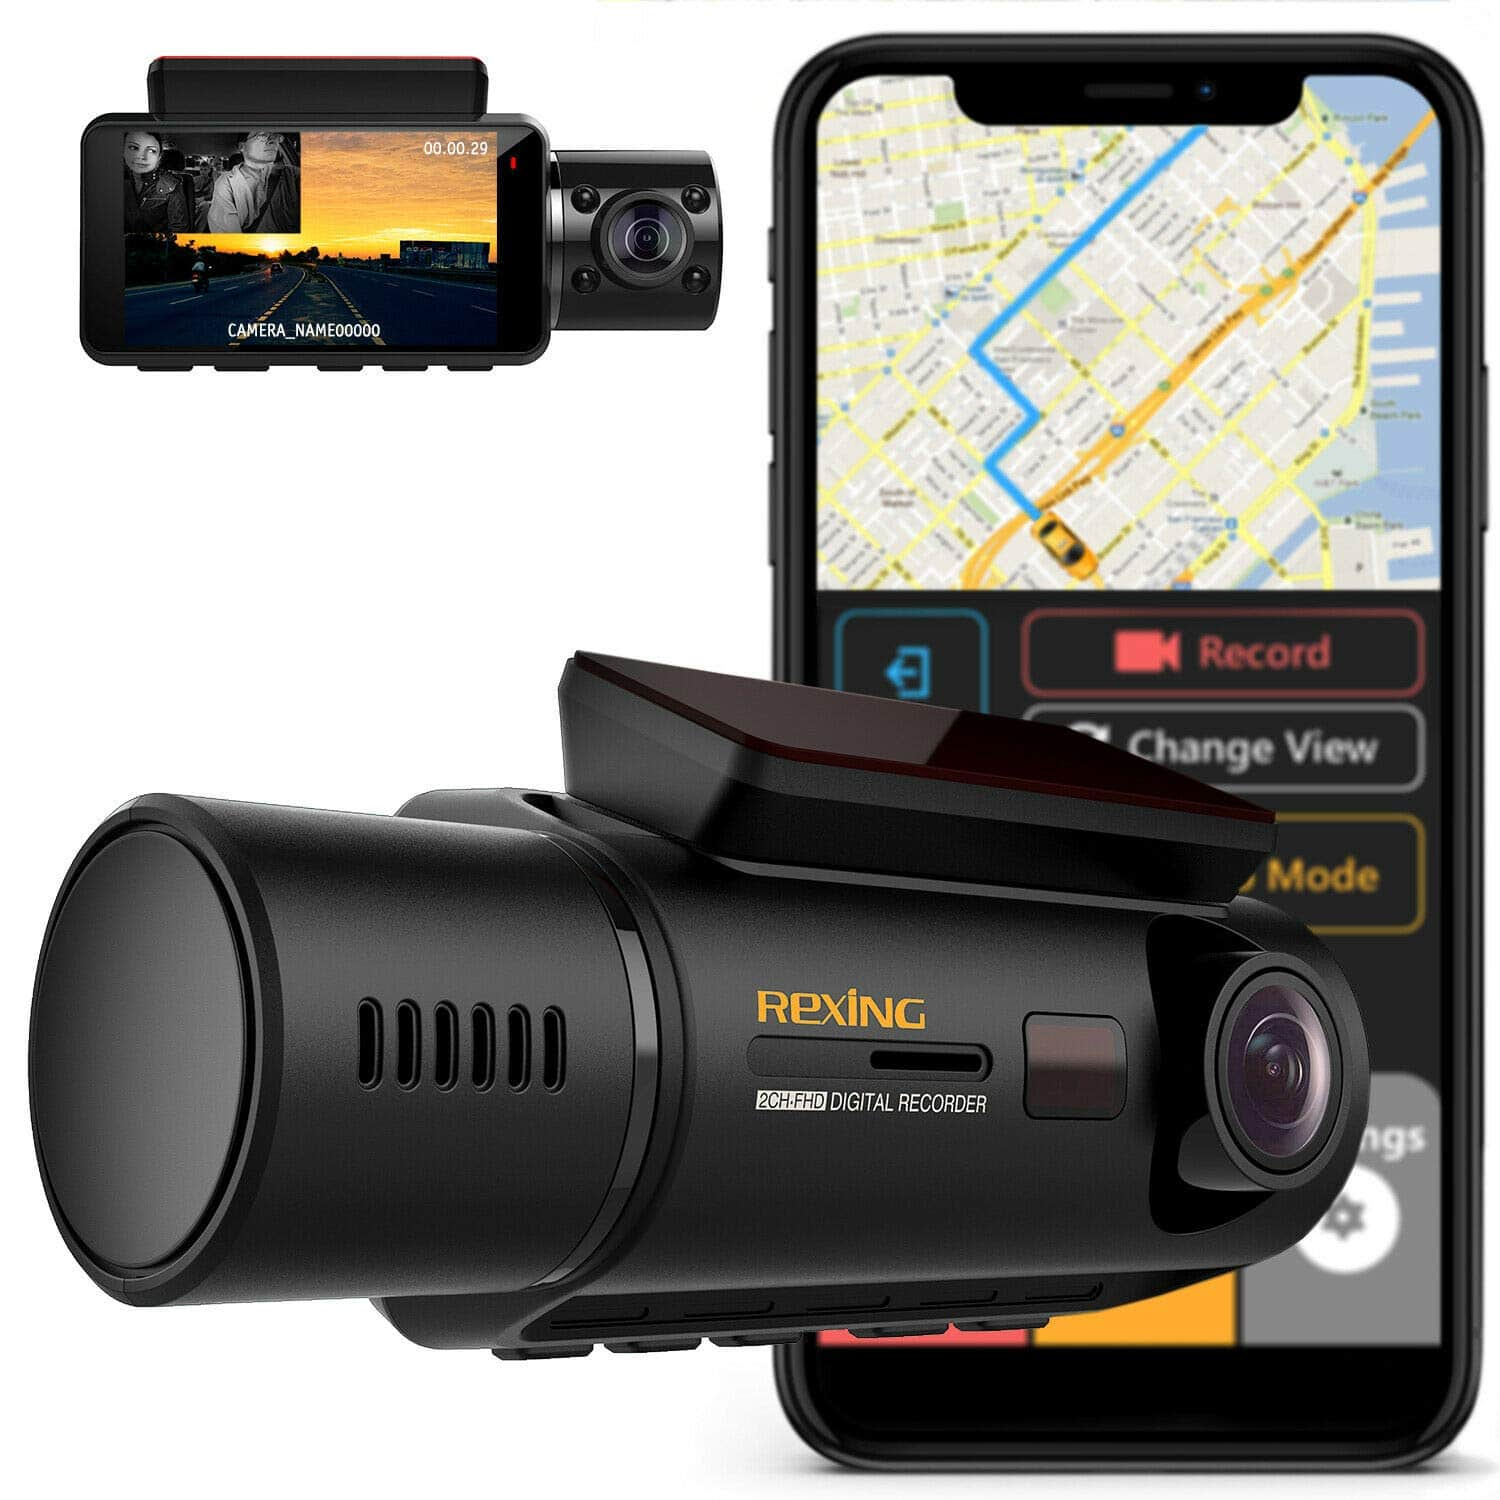 Woot:Rexing V3 Dual Camera Front and Inside Cabin Infrared Night Vision Full HD 1080p WiFi Dash Cam $139.99+FS